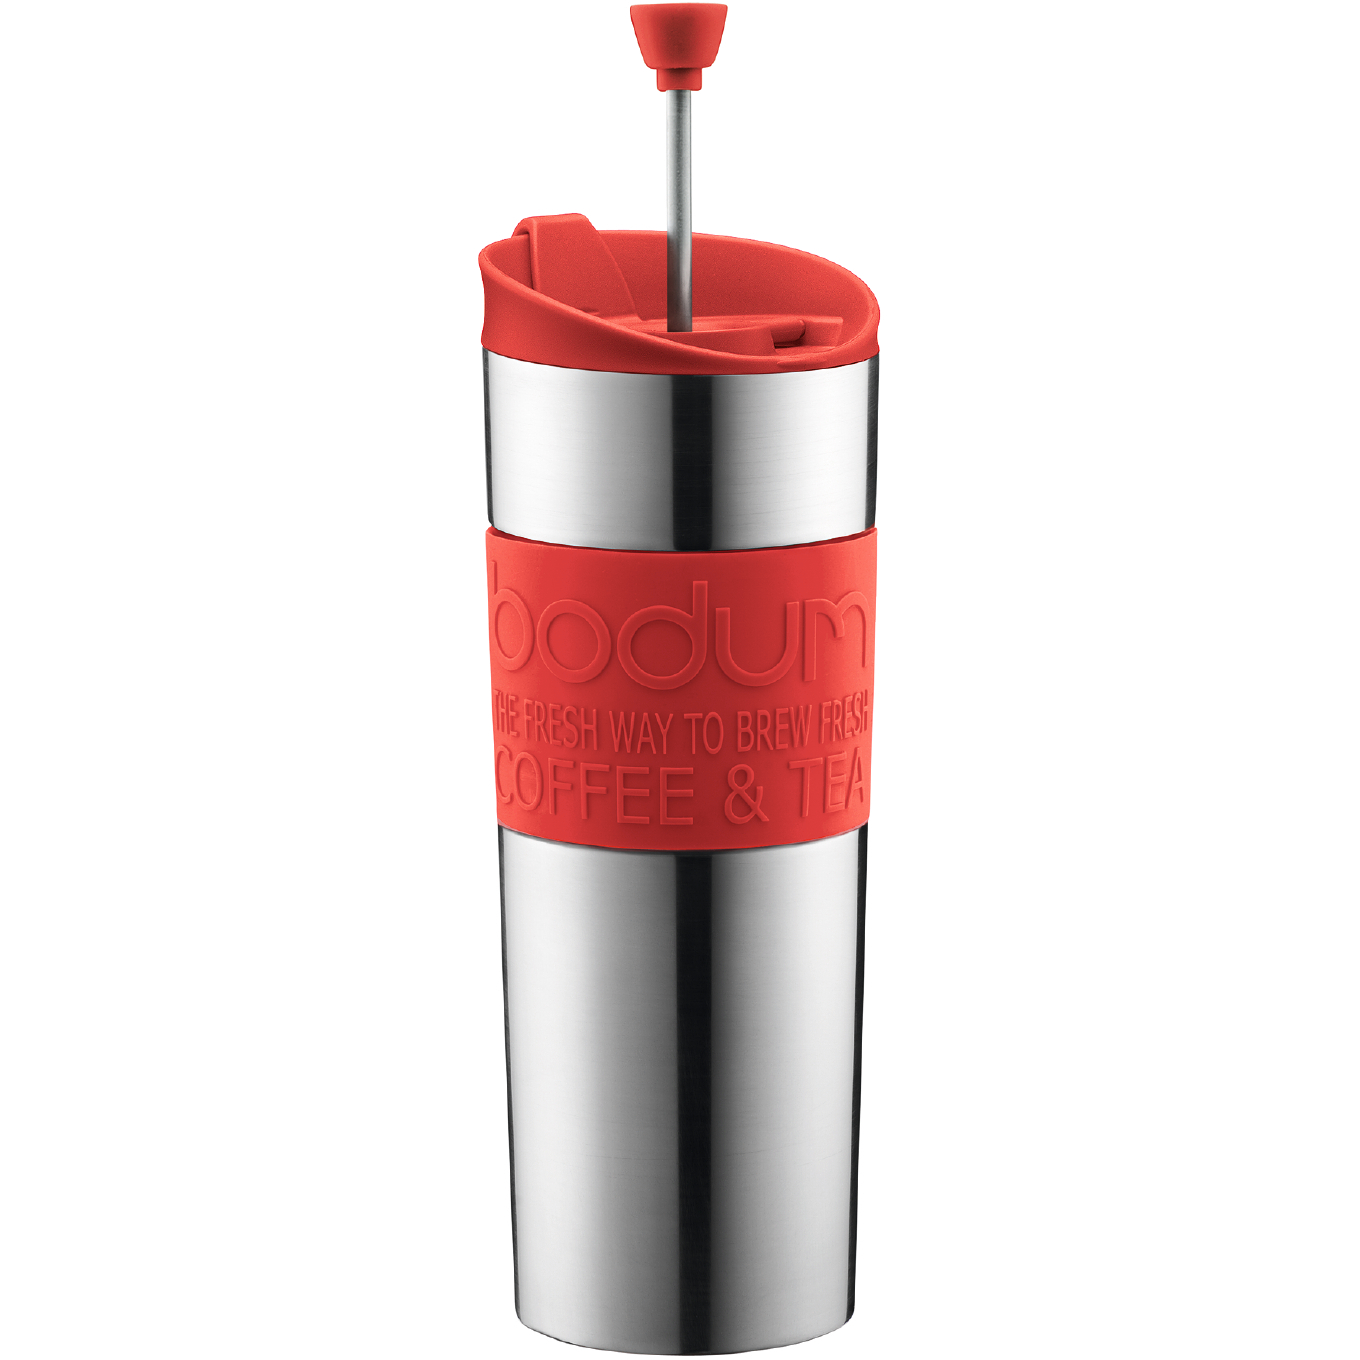 Bodum Insulated Stainless Steel Travel French Press with Red Accents, 15 Ounce